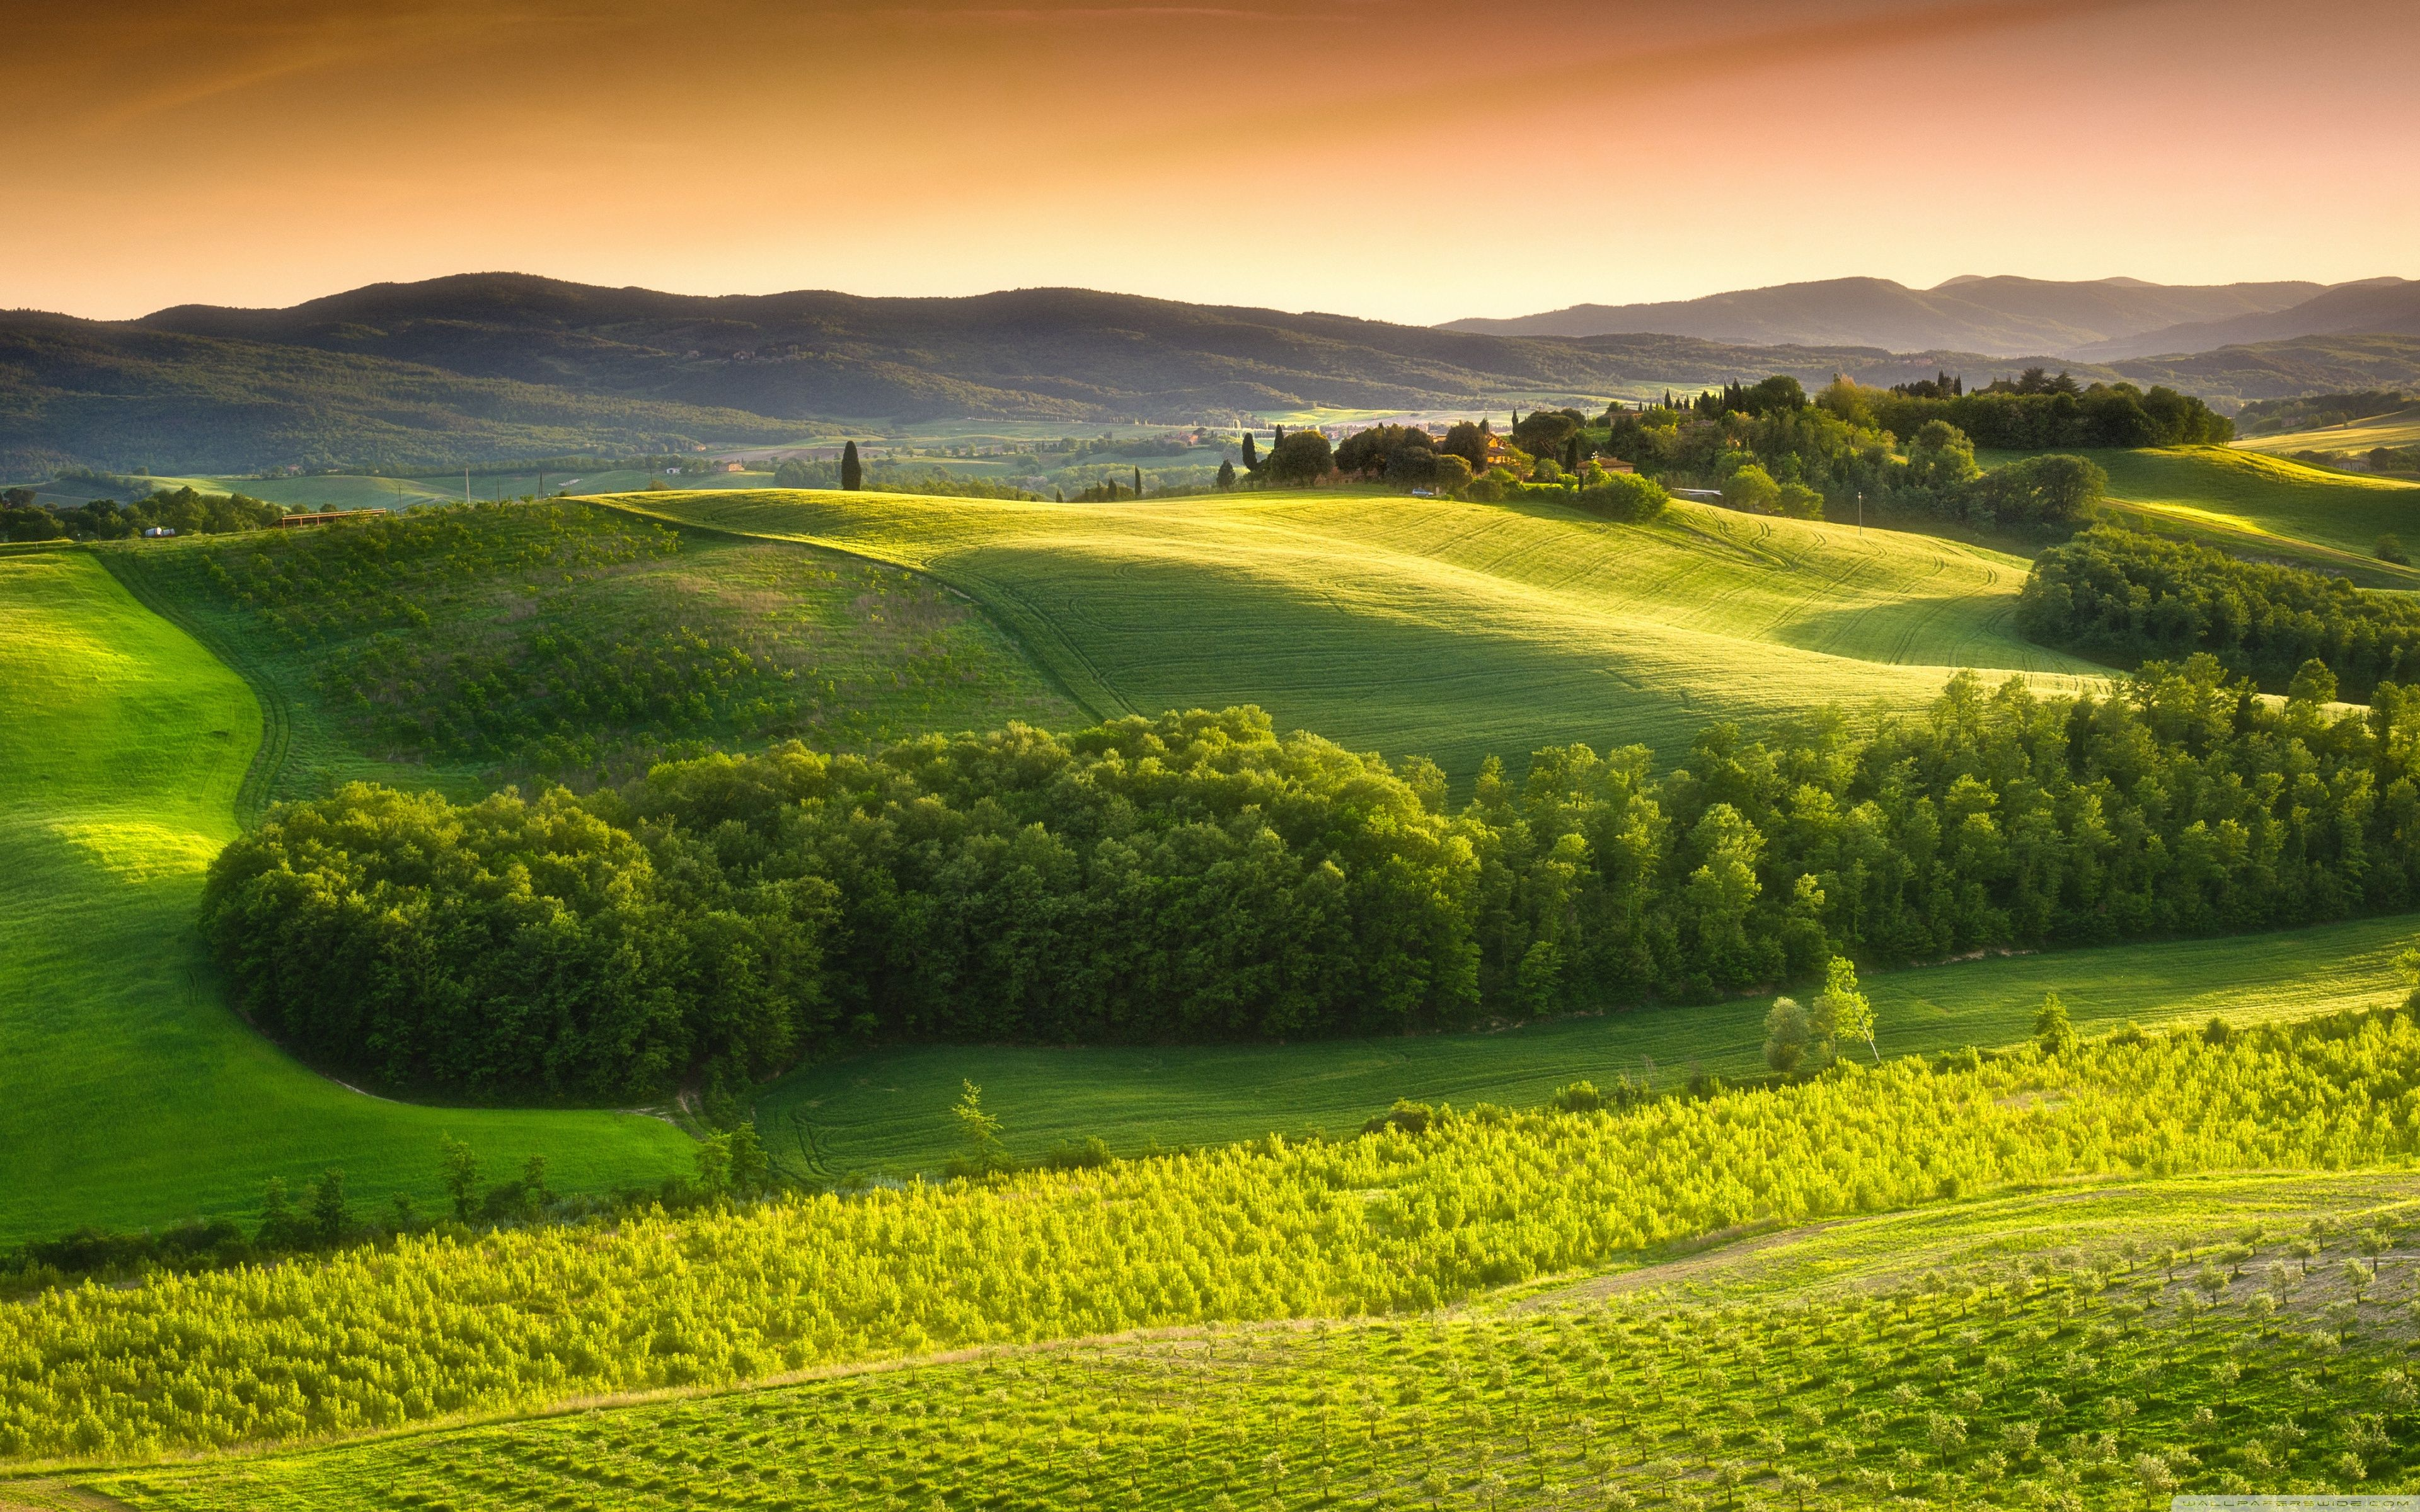 Italy Landscape Wallpapers Top Free Italy Landscape Backgrounds